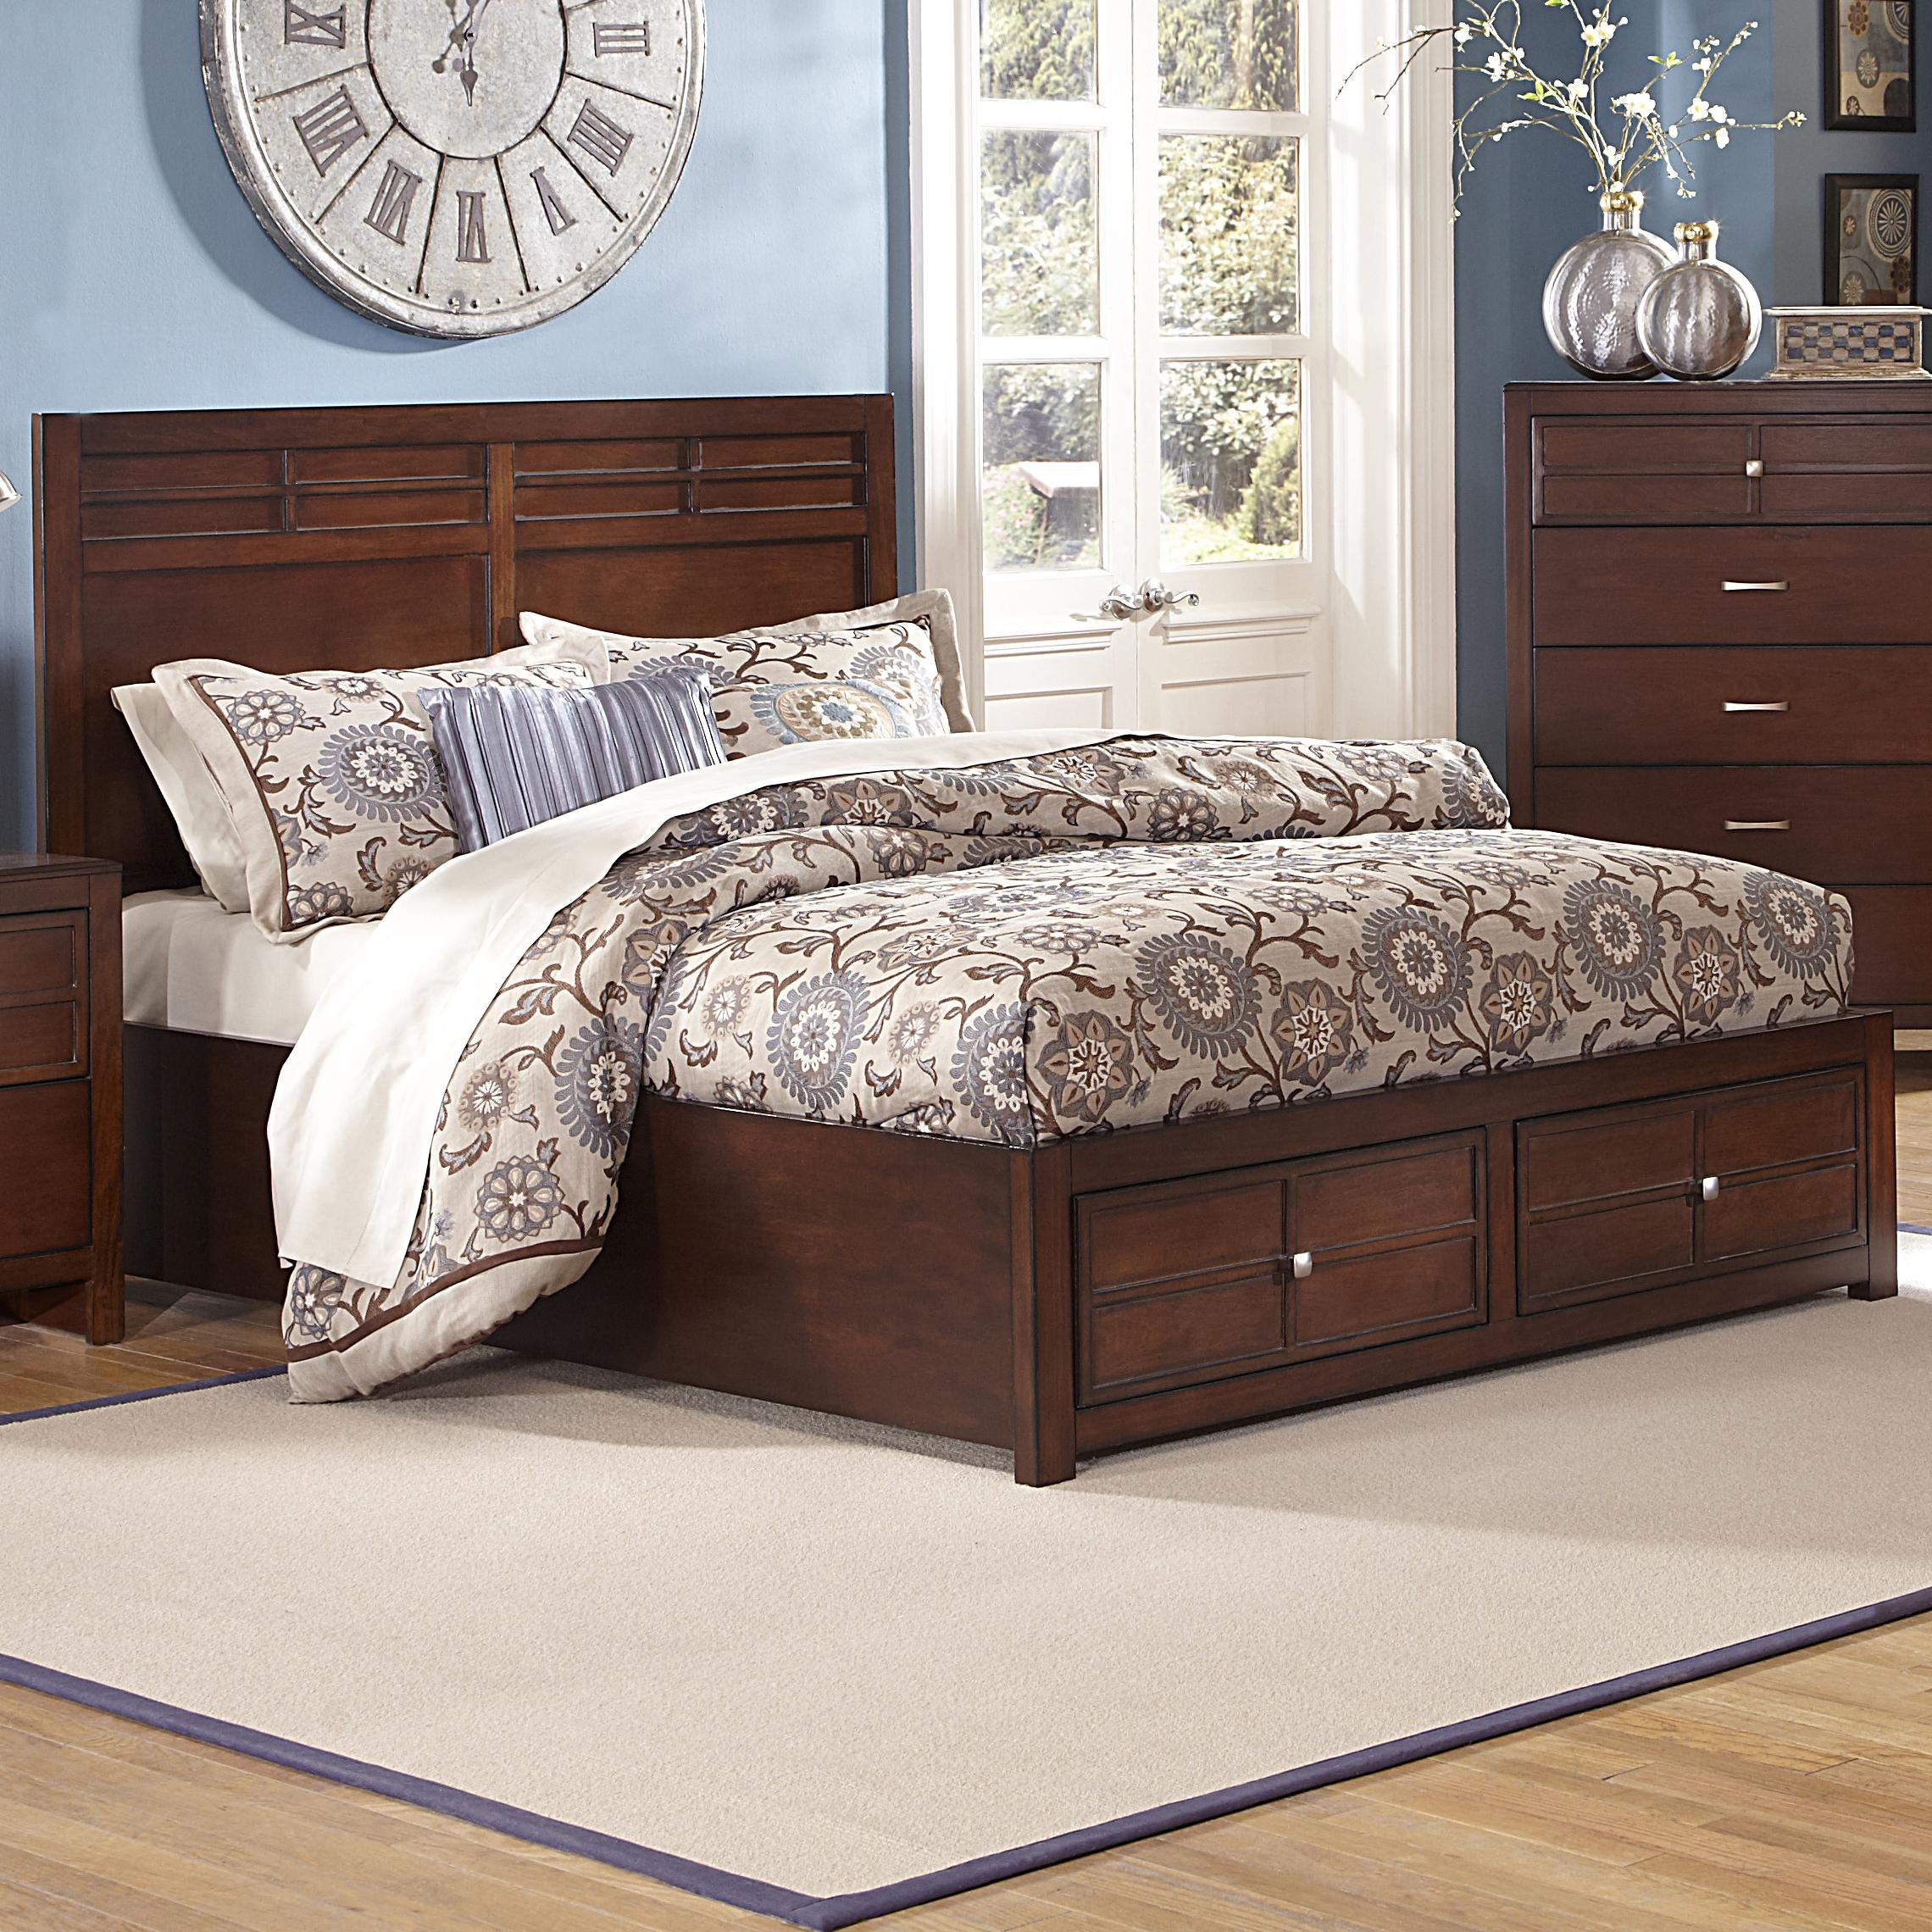 New Classic Kensington Queen Low Profile Bed With Storage Footboard Dunk Bright Furniture